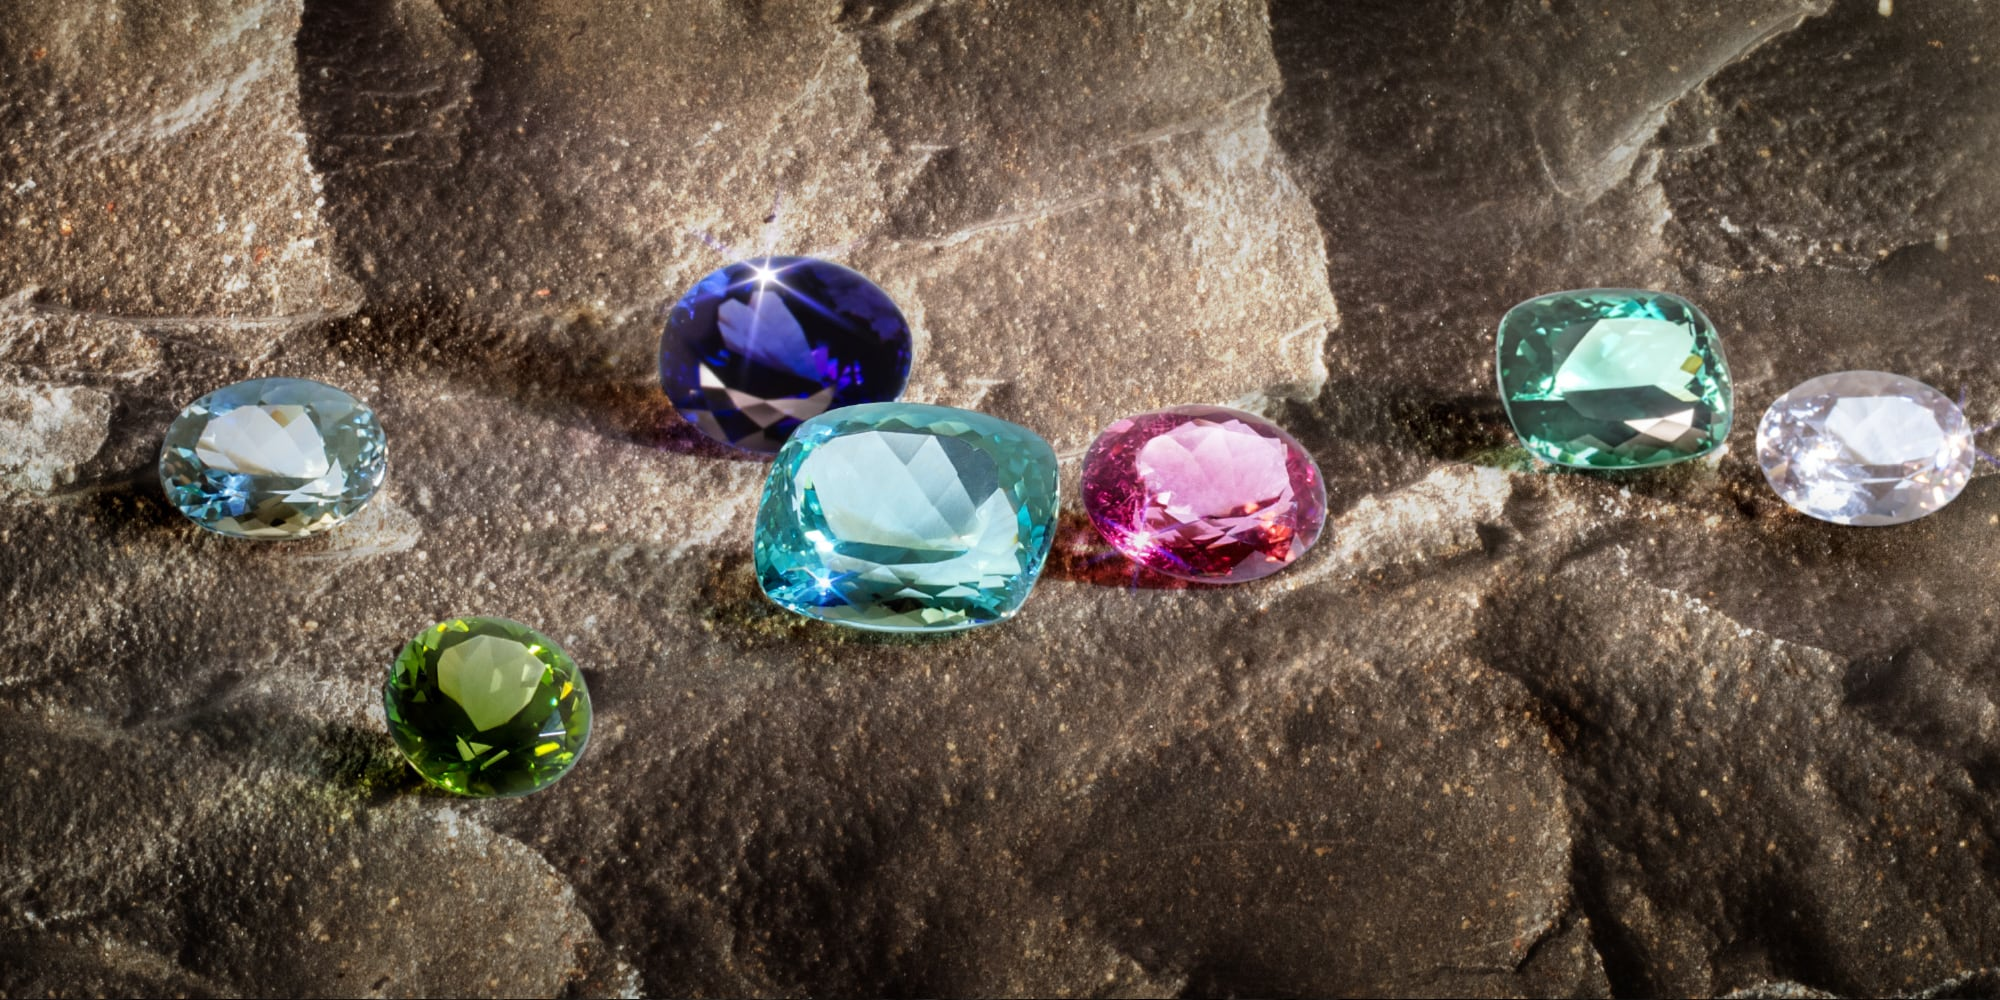 Several gemstones on rocks